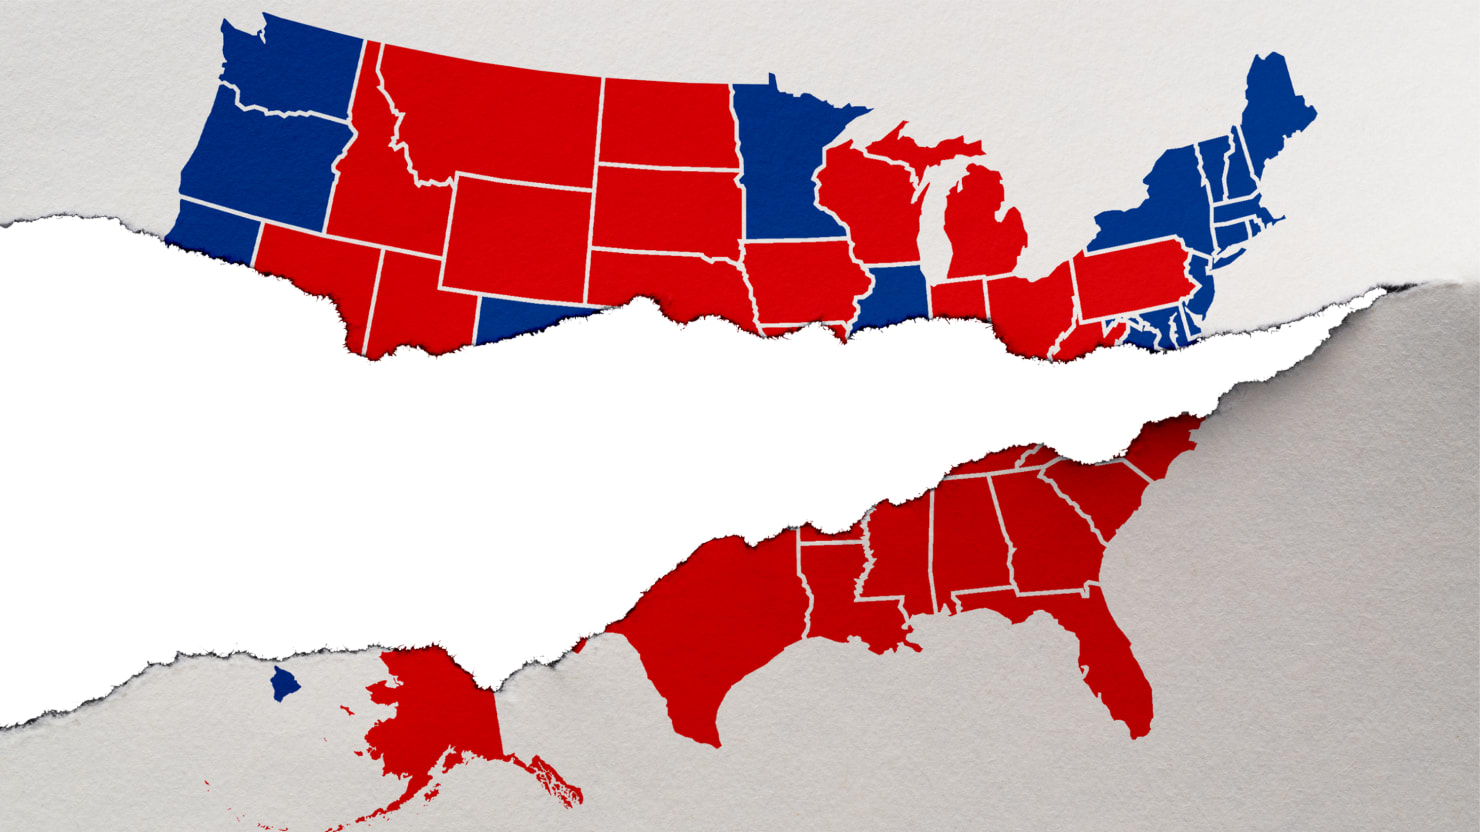 It's Time to Kill the Electoral College, One of America's Original Sins